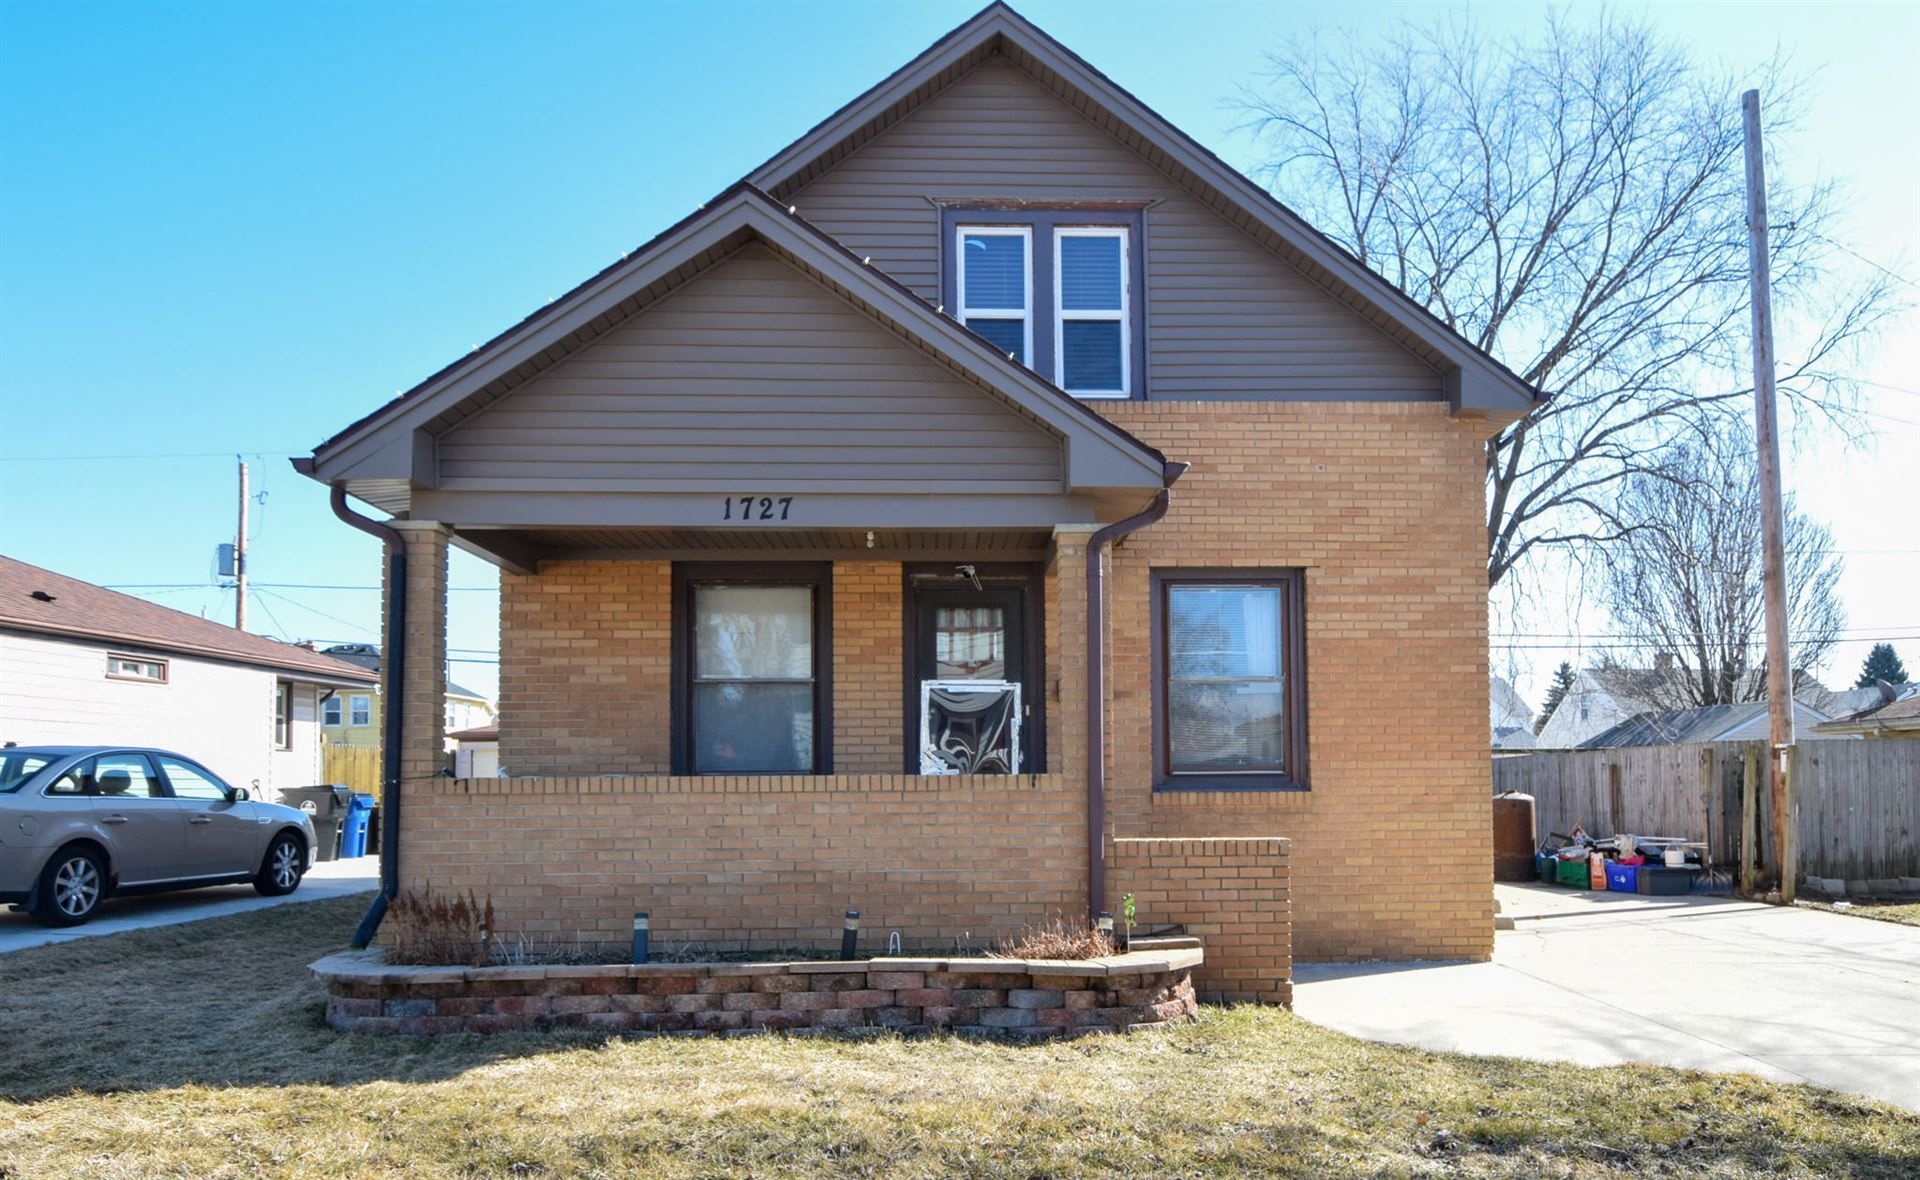 1727 Connolly Ave, Racine, WI 53405 - #: 1680535